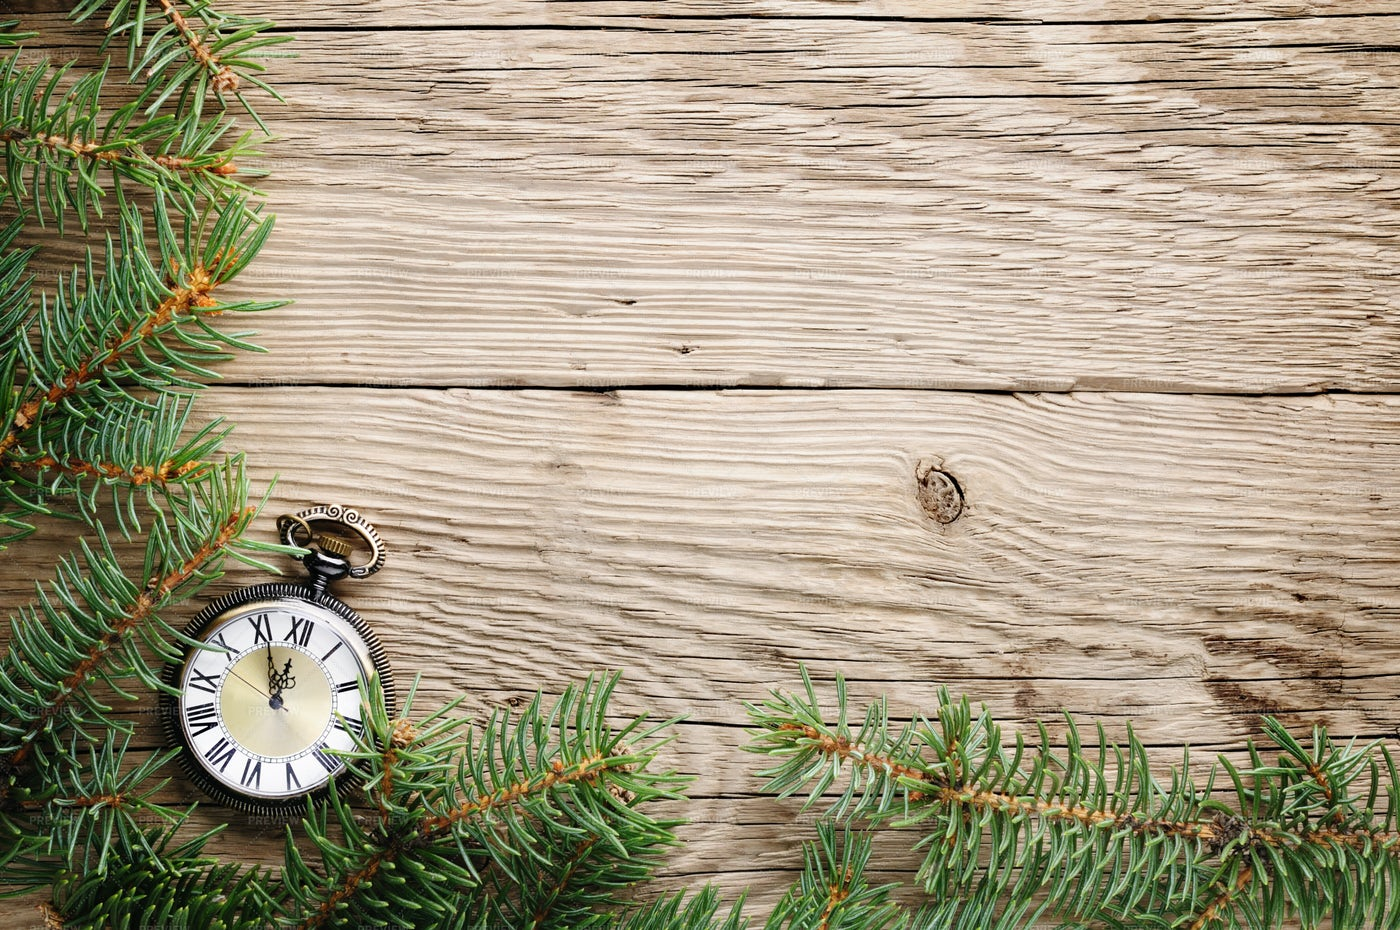 Christmas Tree And Antique Watch: Stock Photos